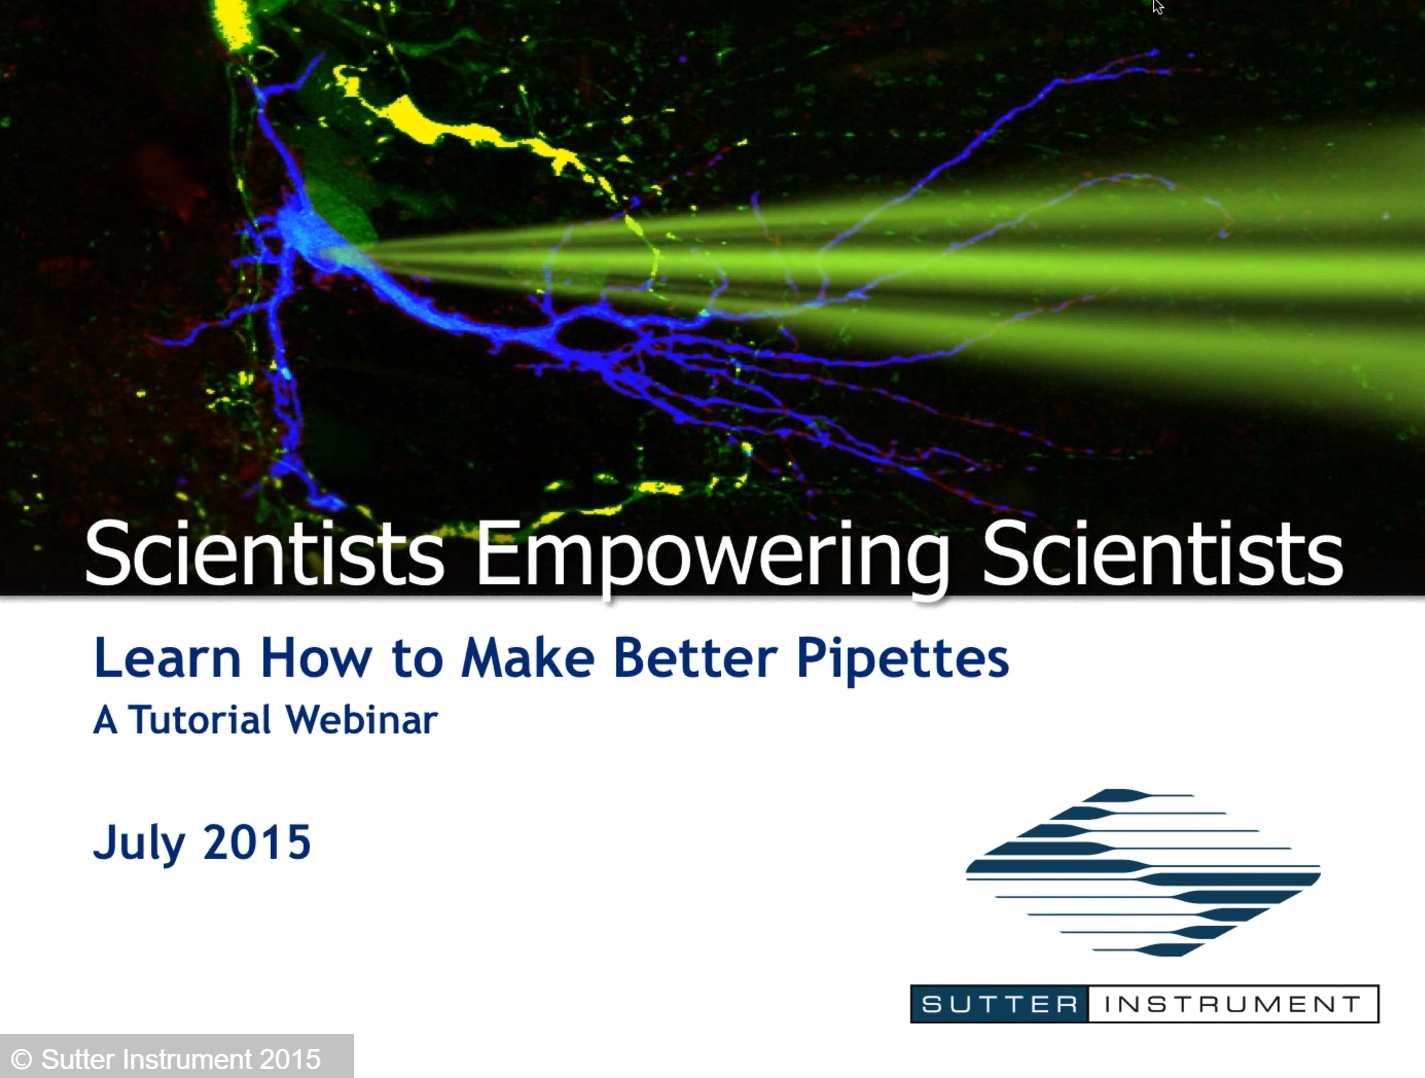 How To Make Better Pipettes - Scientists Empowering Scientists